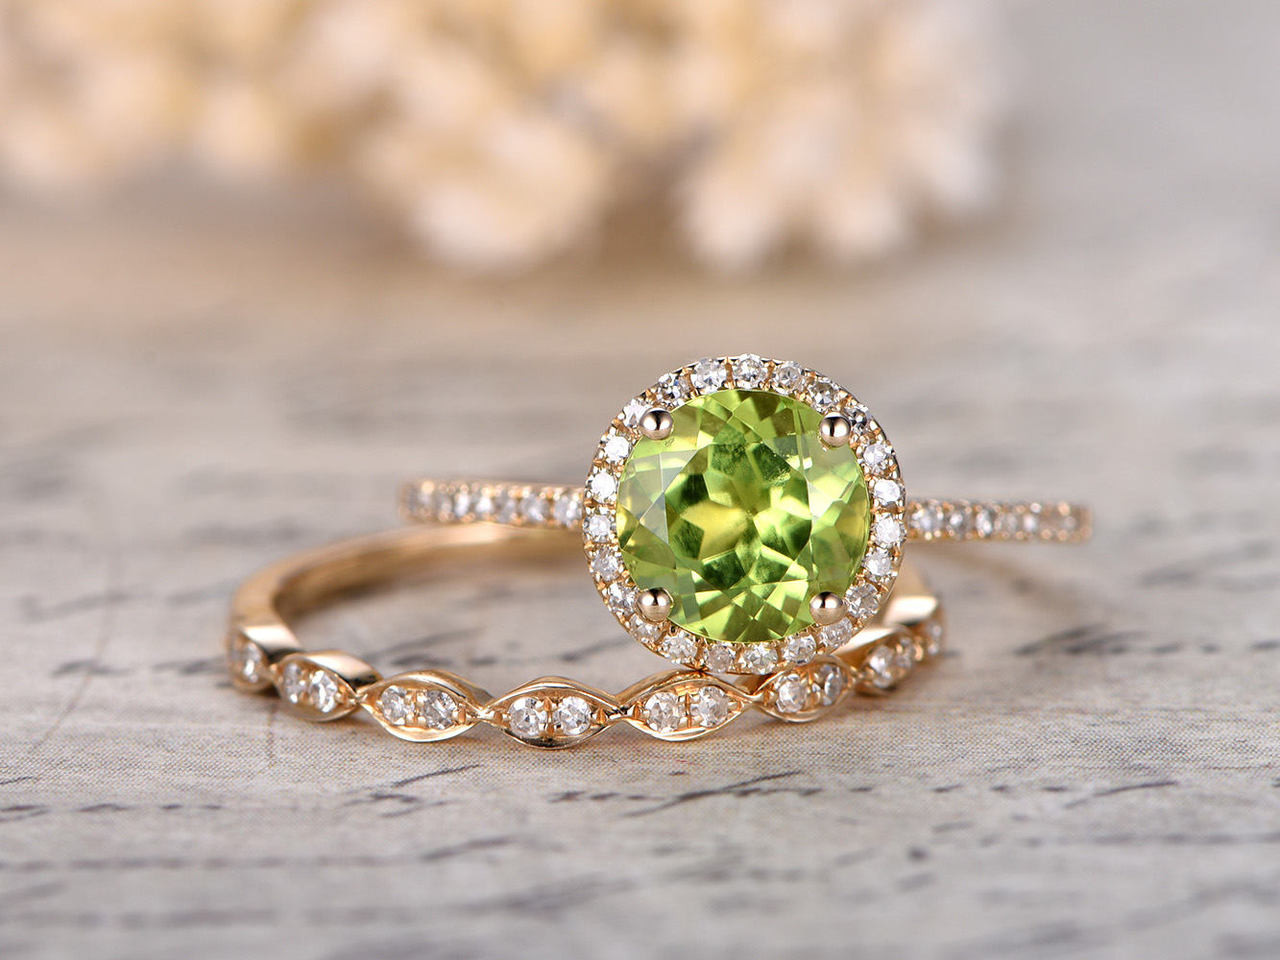 Peridot Engagement Ring Set 7mm Round Cut Peridot Bridal Sets And